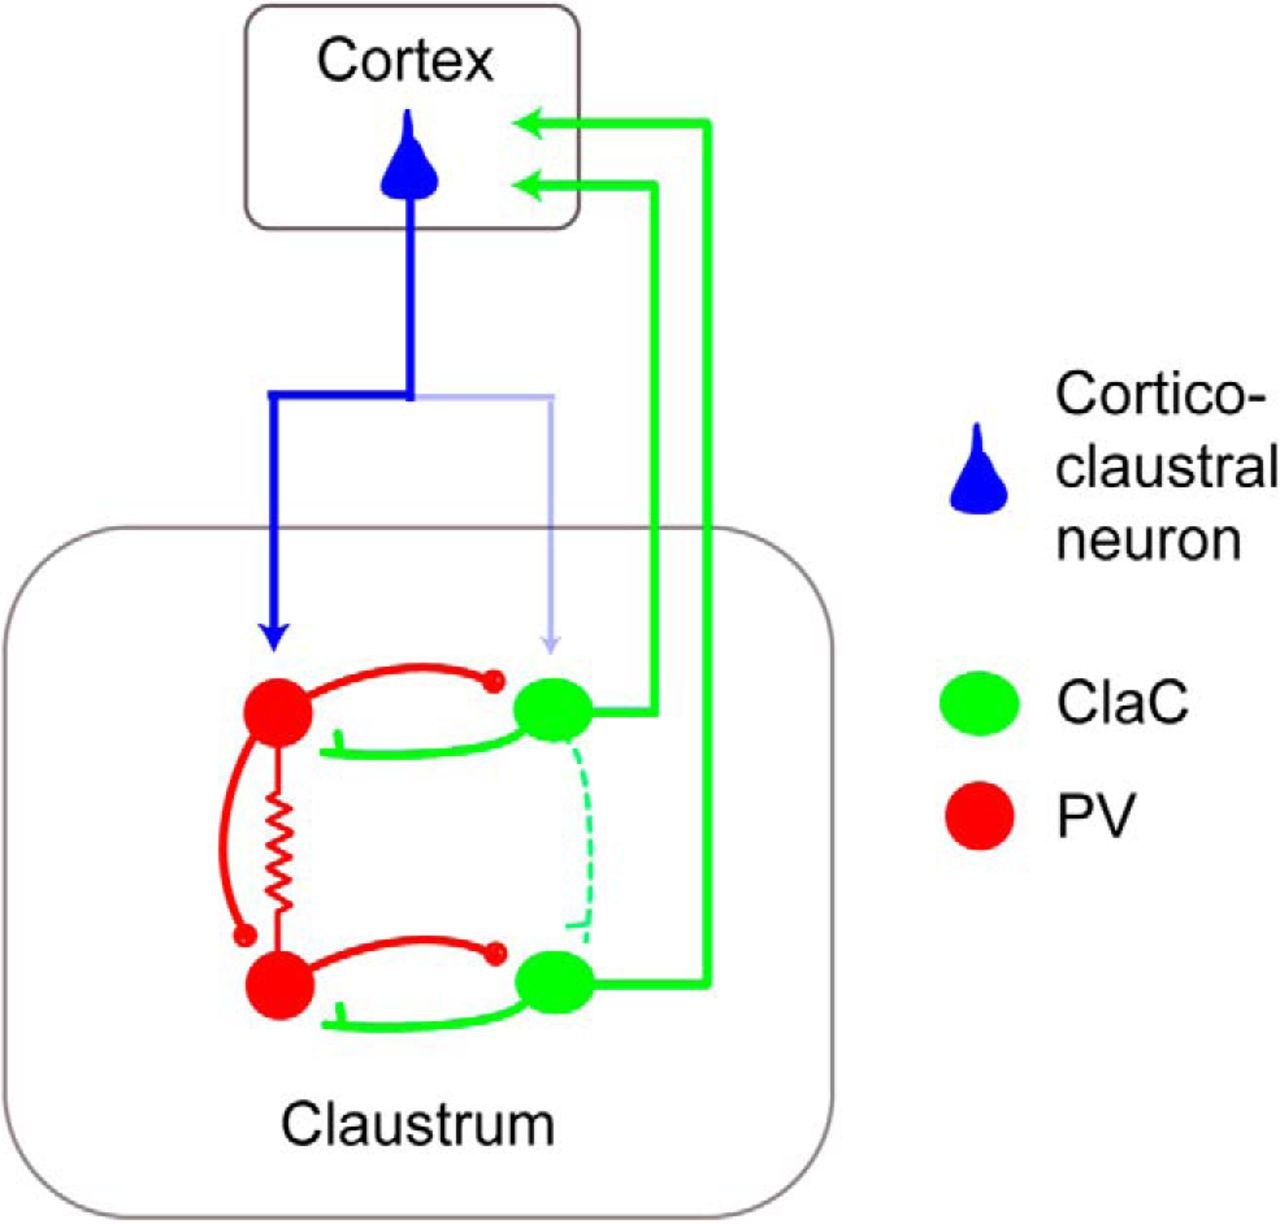 Synaptic organization of the neuronal circuits of the claustrum download figure ccuart Choice Image